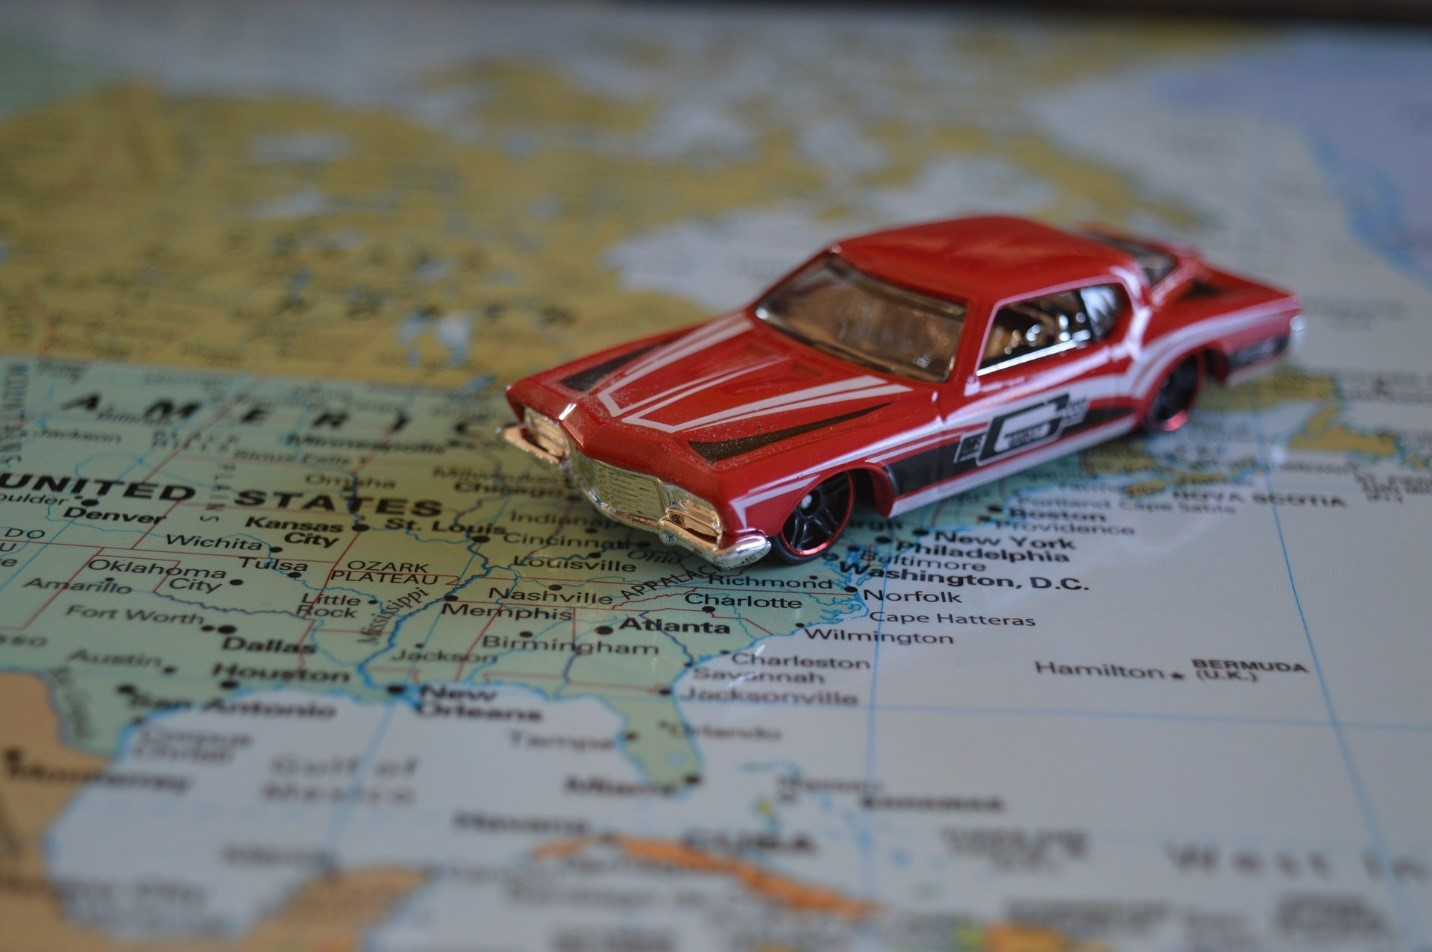 A red toy car on the map of the US